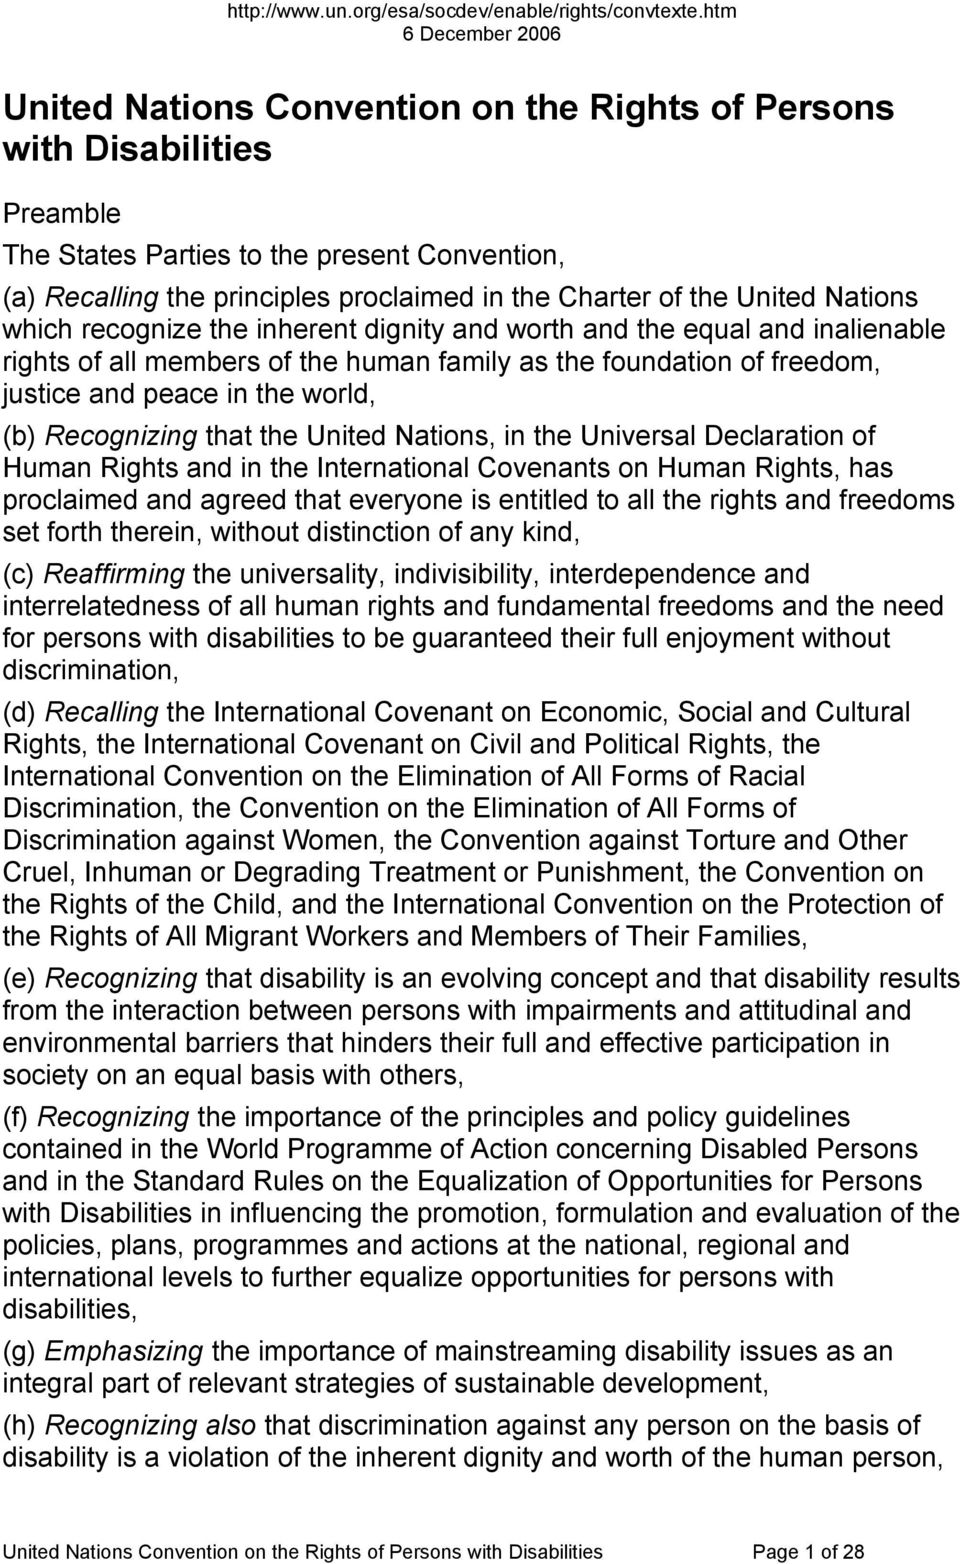 Recognizing that the United Nations, in the Universal Declaration of Human Rights and in the International Covenants on Human Rights, has proclaimed and agreed that everyone is entitled to all the